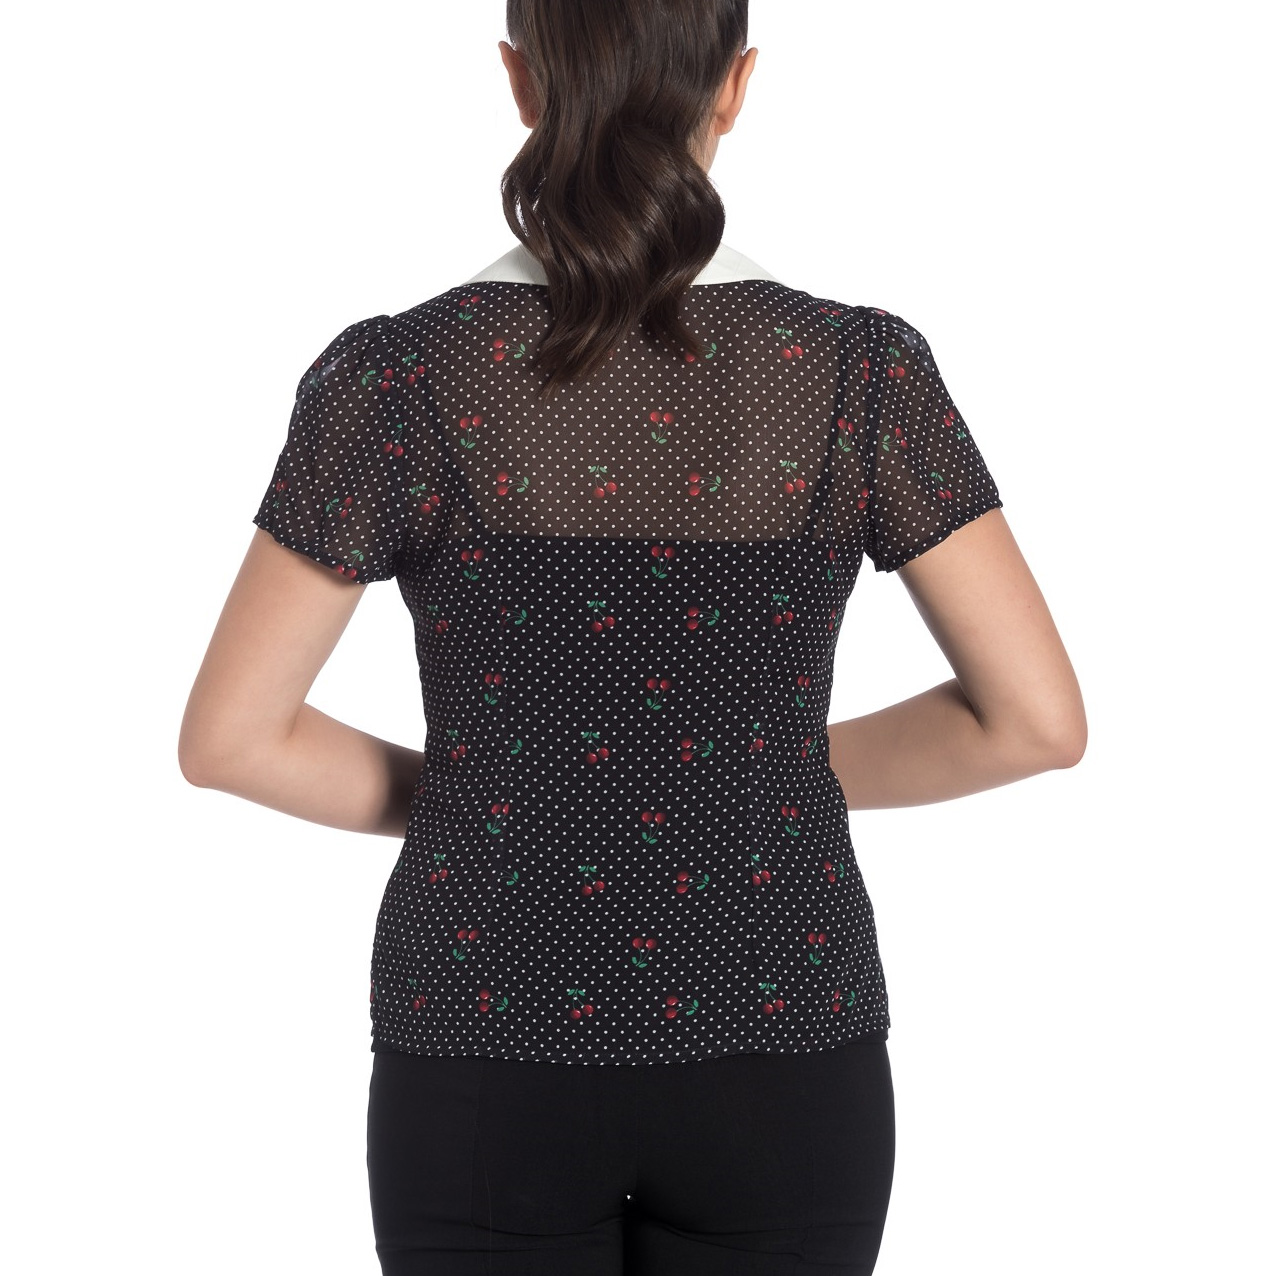 Hell-Bunny-Shirt-Top-Black-50s-Polka-Dot-SOPHIE-Blouse-Cherries-Cherry-All-Sizes thumbnail 5